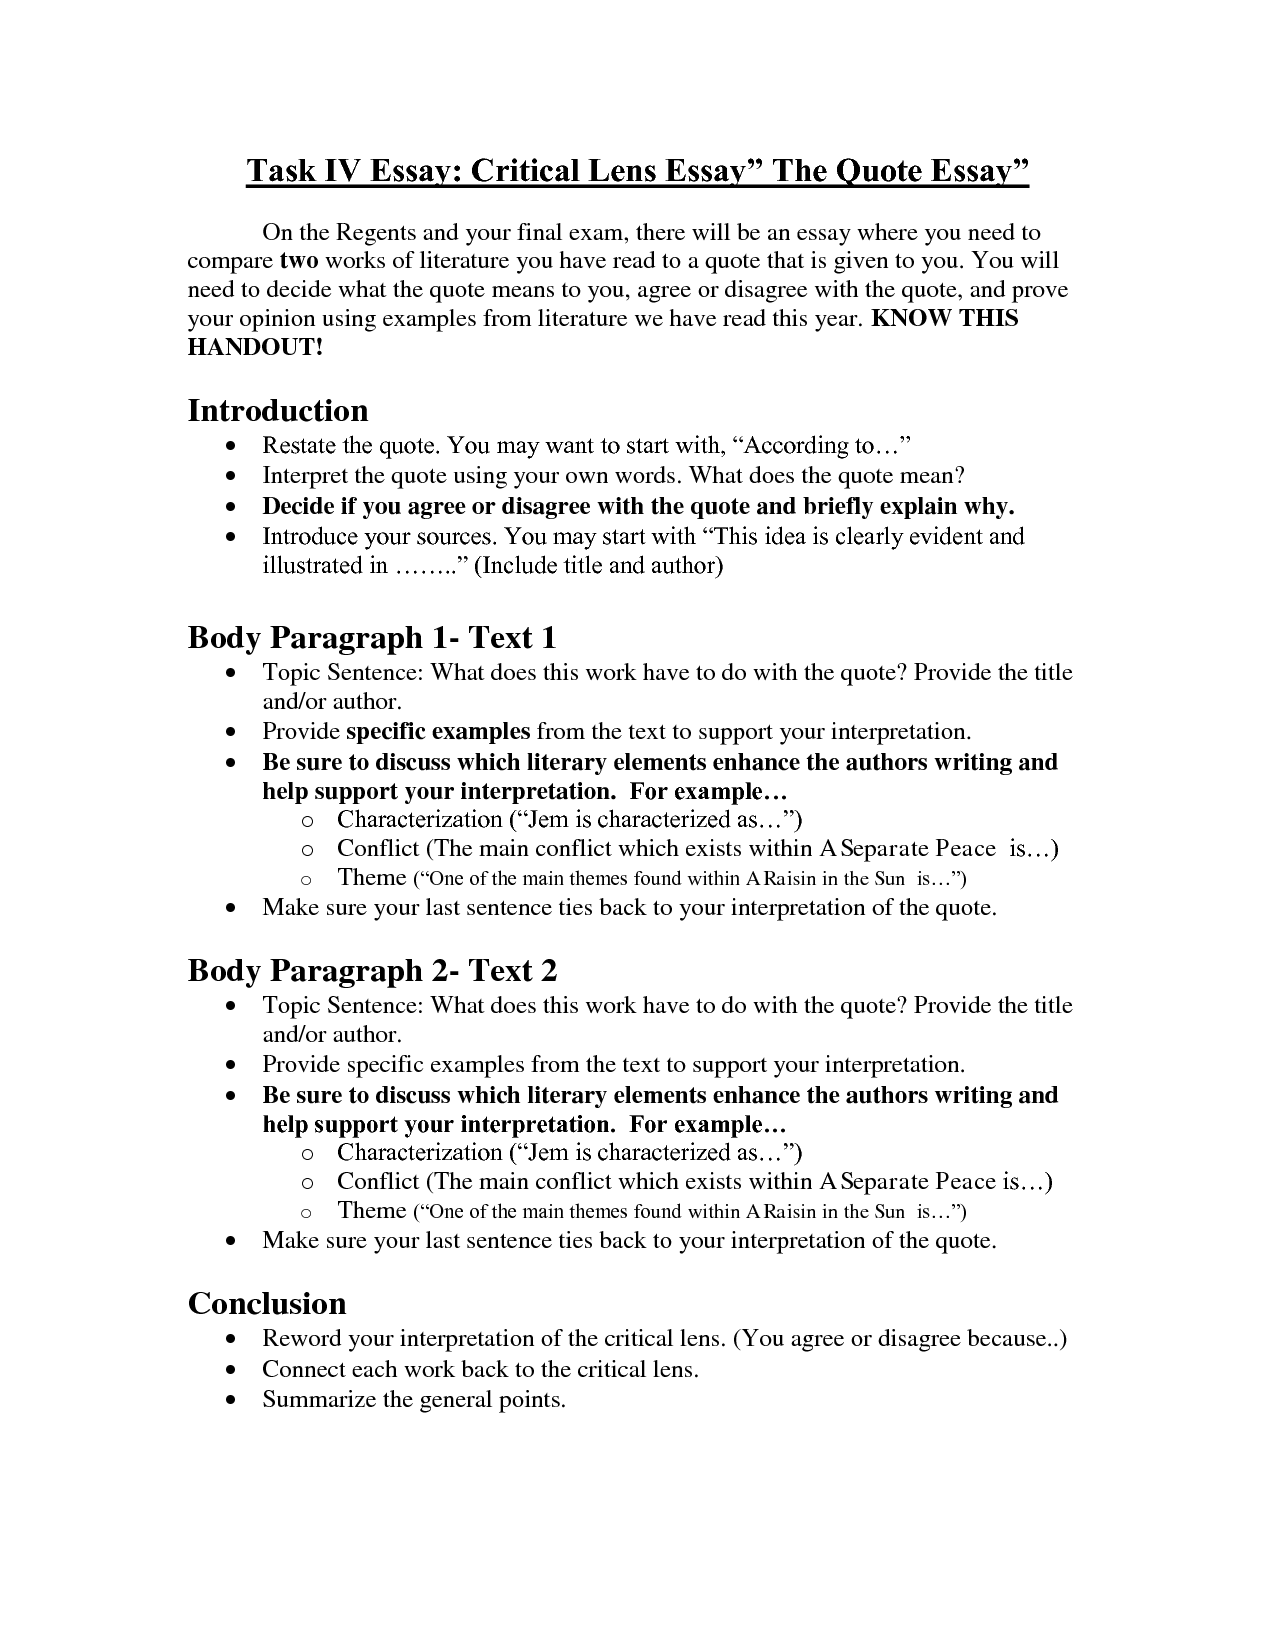 books to use for critical lens essay Critical lens essay step by step step 5 an essay in which you will be required to interpret a quote and relate its meaning to two works of literature by looking at how.